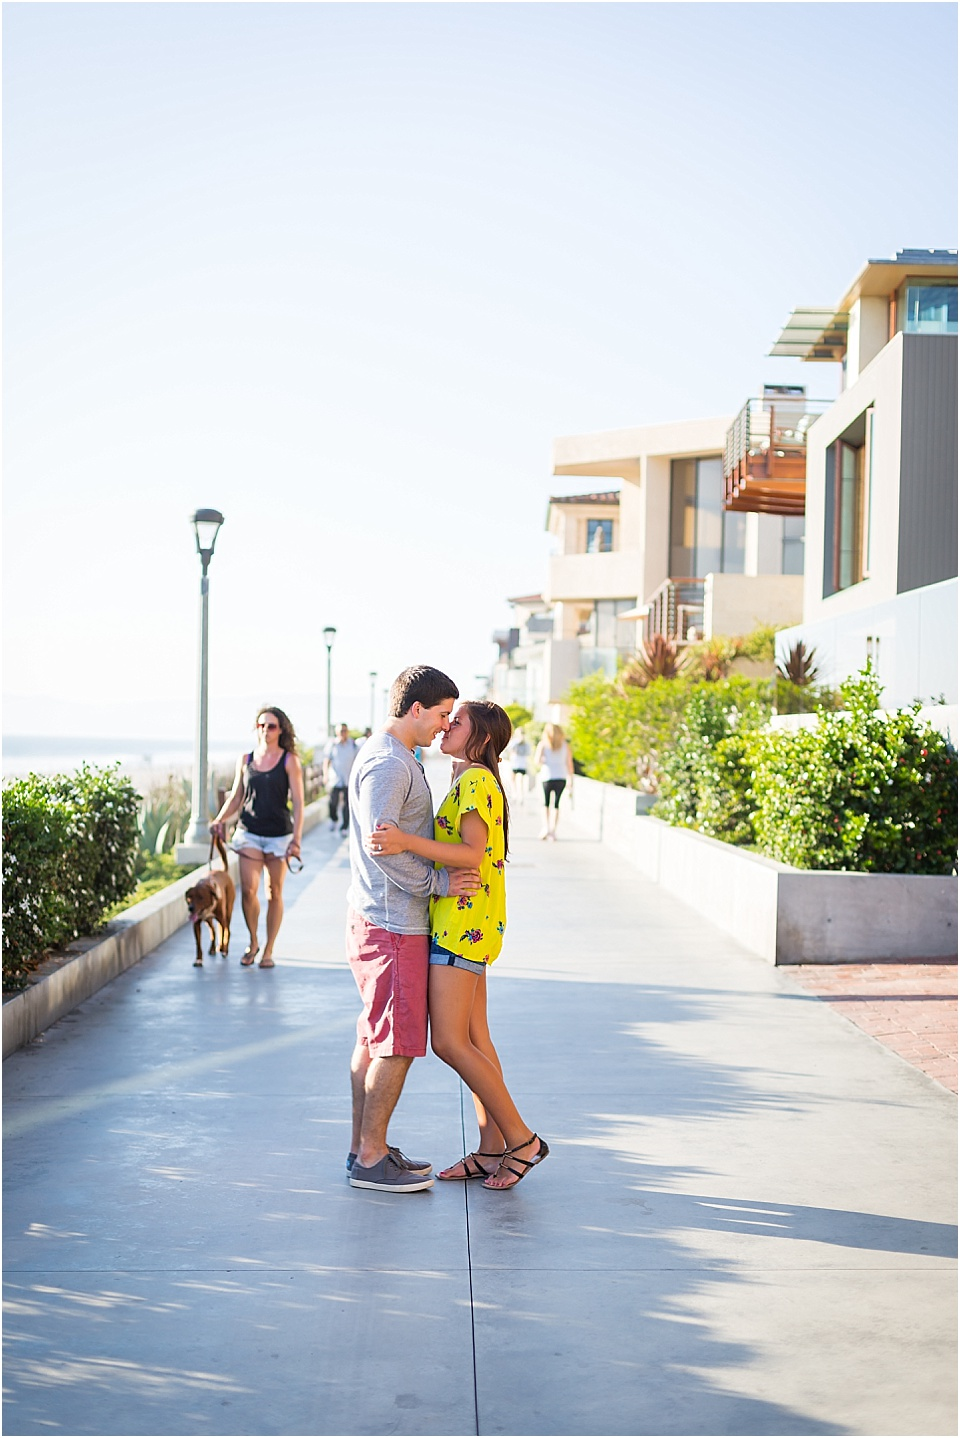 Manhattan Beach - Long boarding - Engagement Photos {Valorie Darling Photography} - 10450.jpg